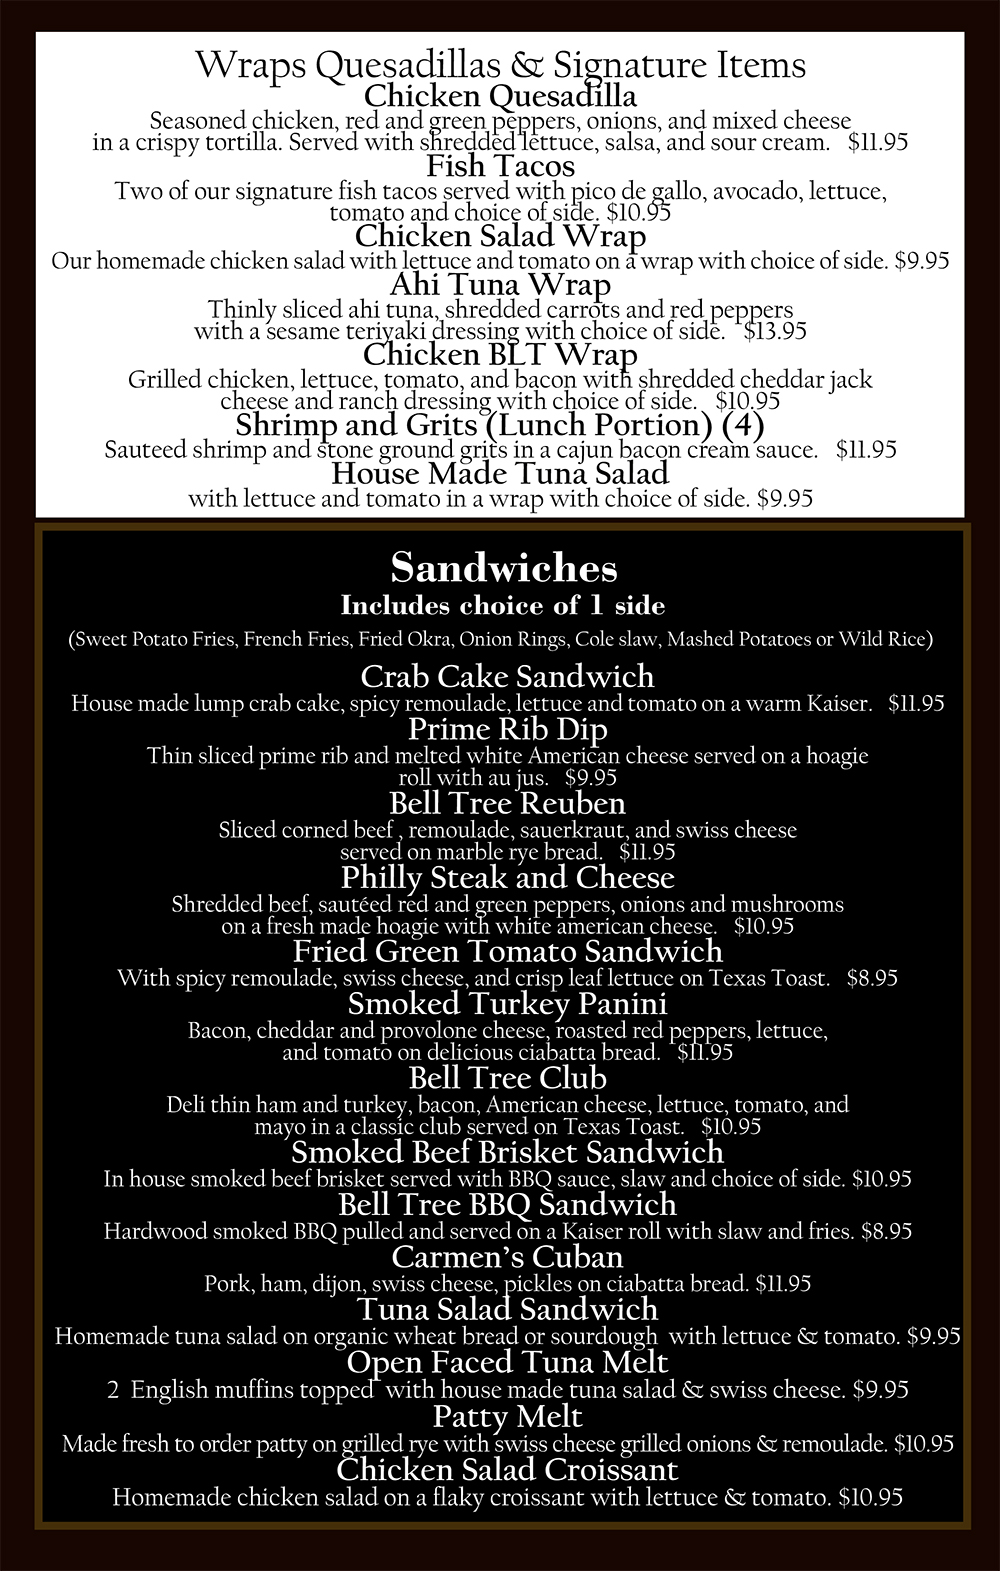 belltree menu2019 3